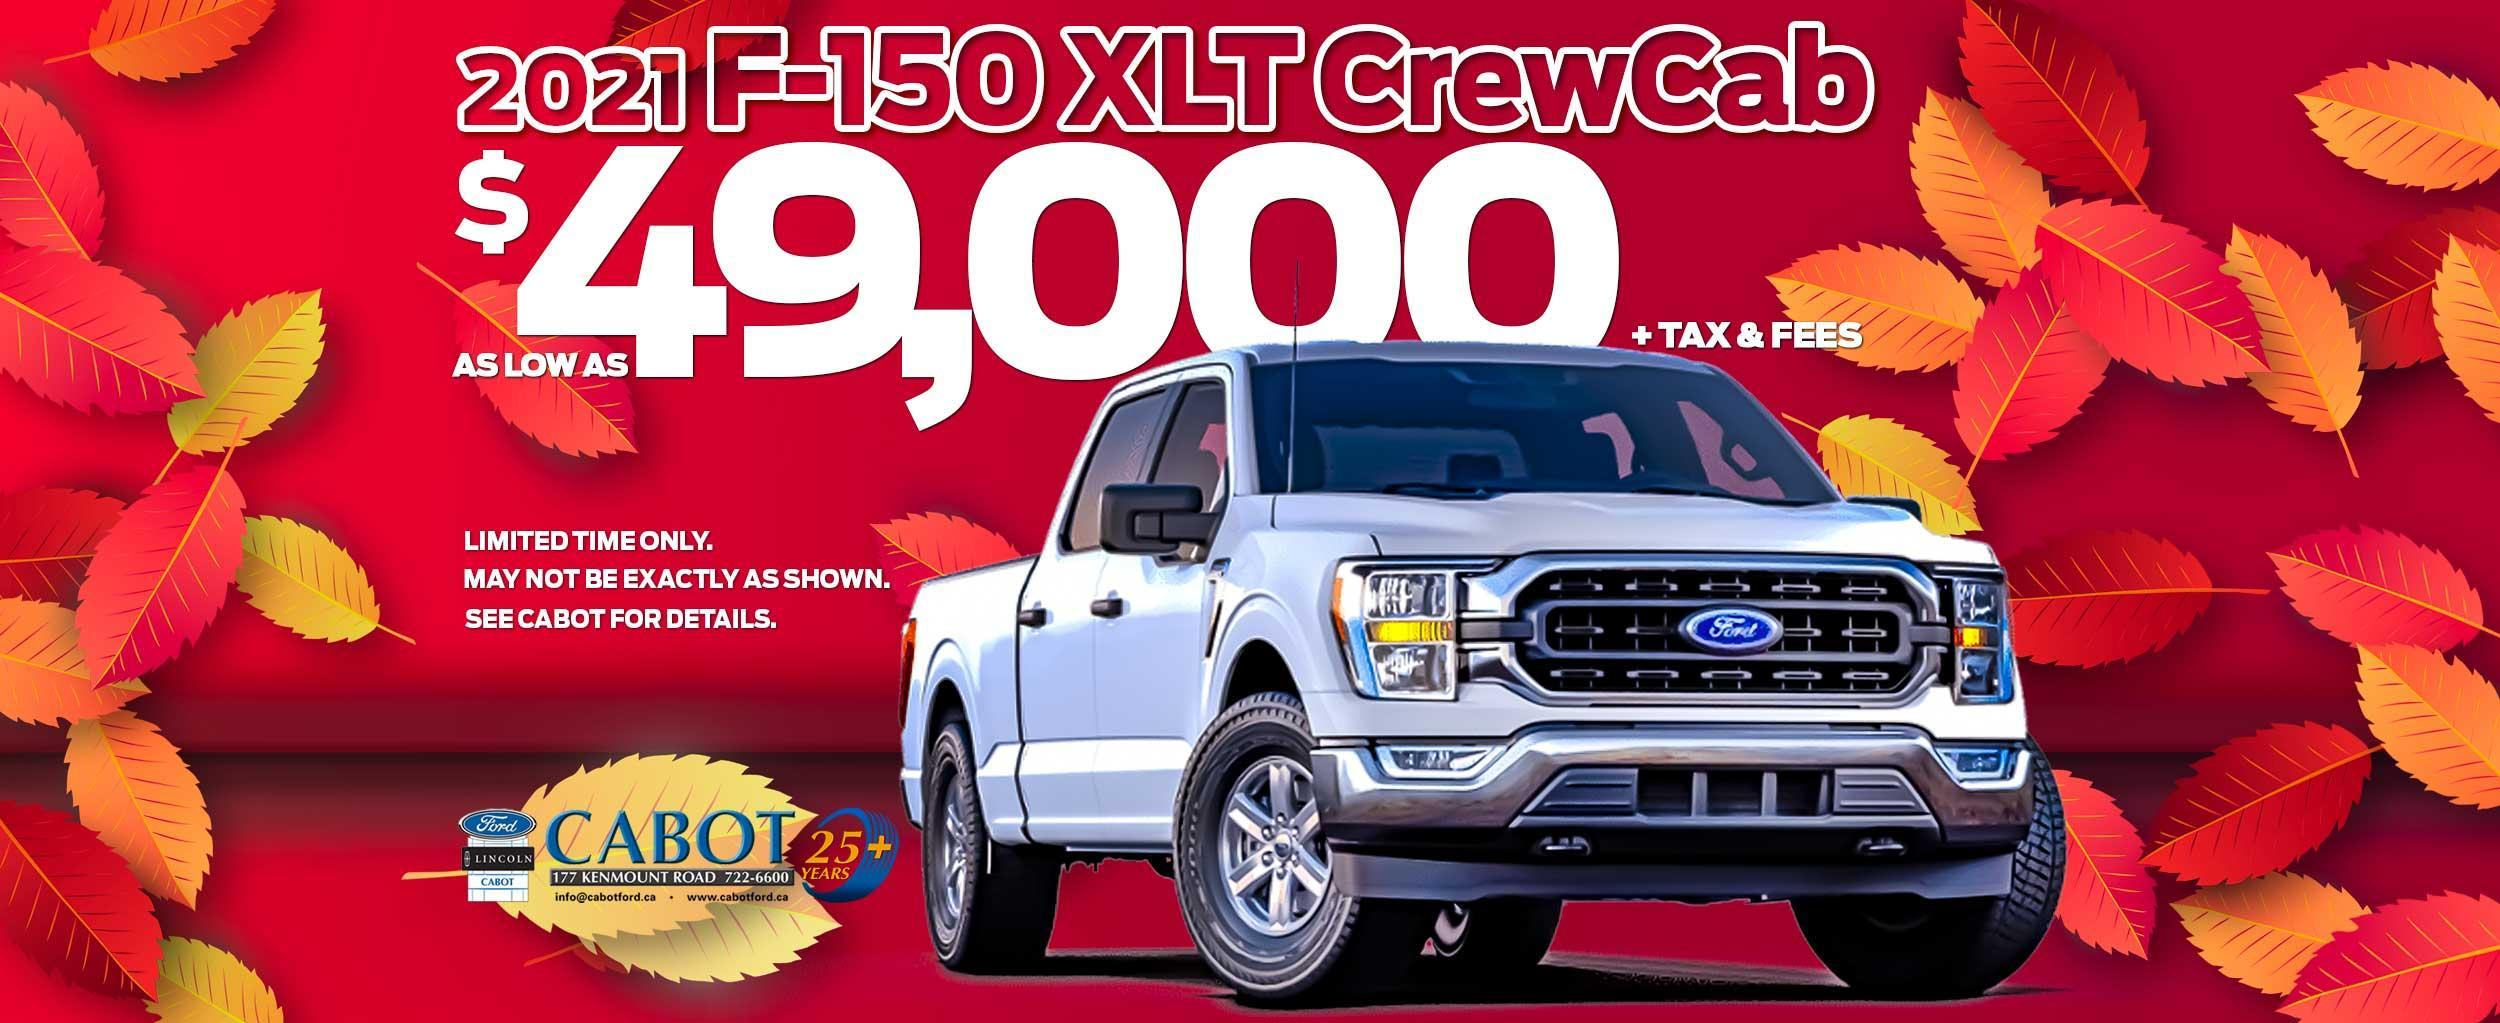 2021 F-150 XLT Crewcab for as low as $49,000 + tax & fees!